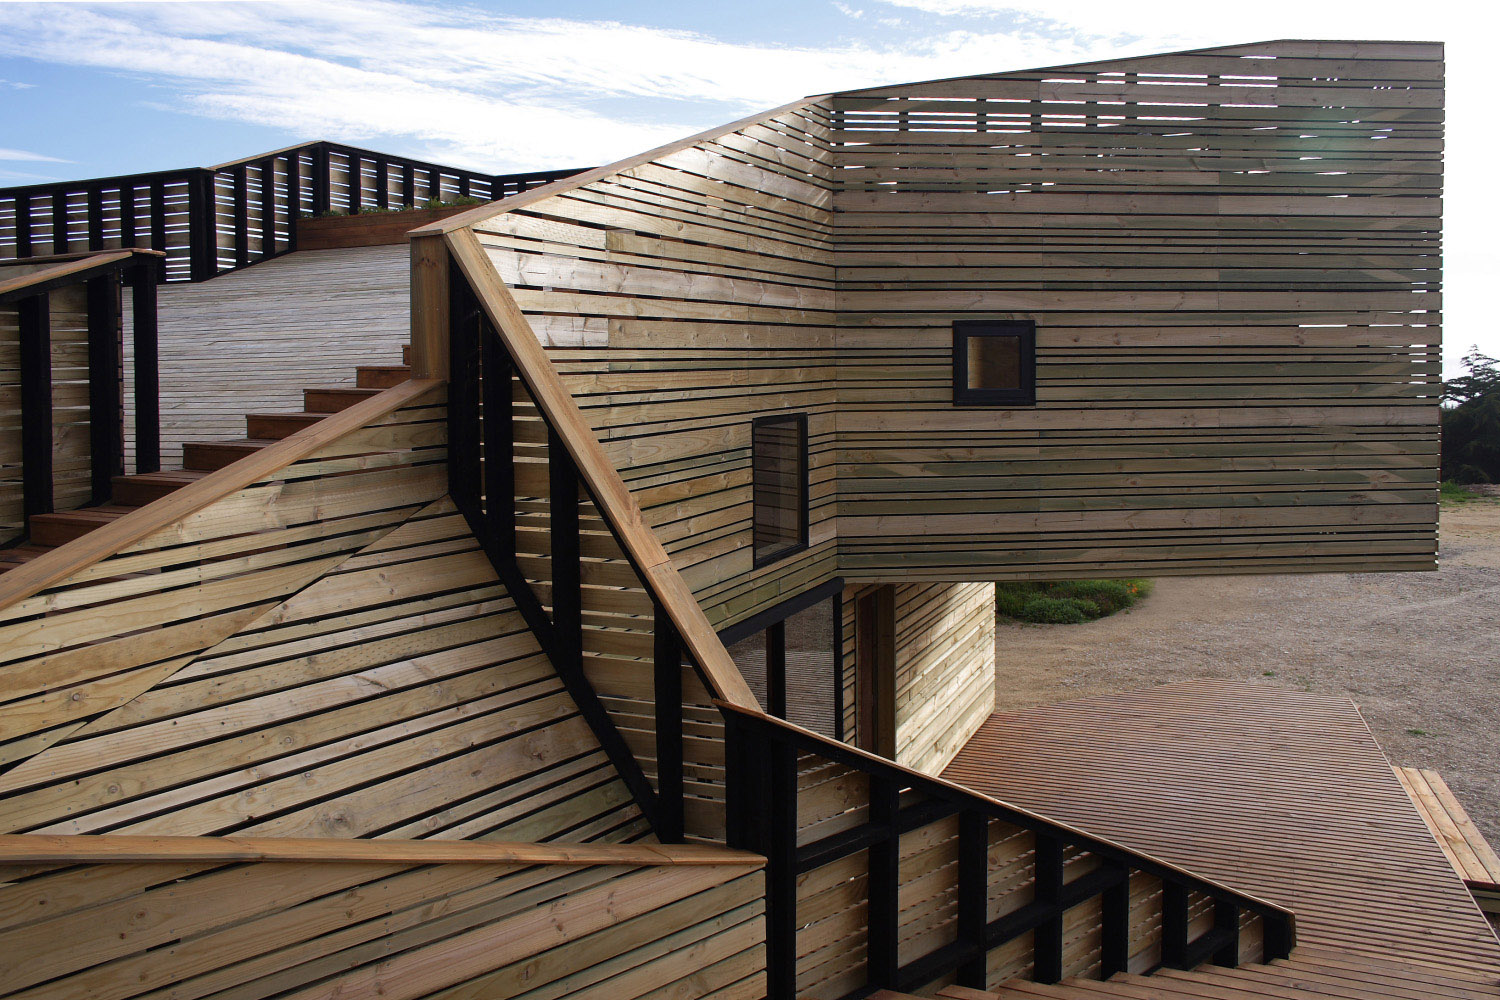 Metamorphosis House In Chile  Shelby White  The Blog Of